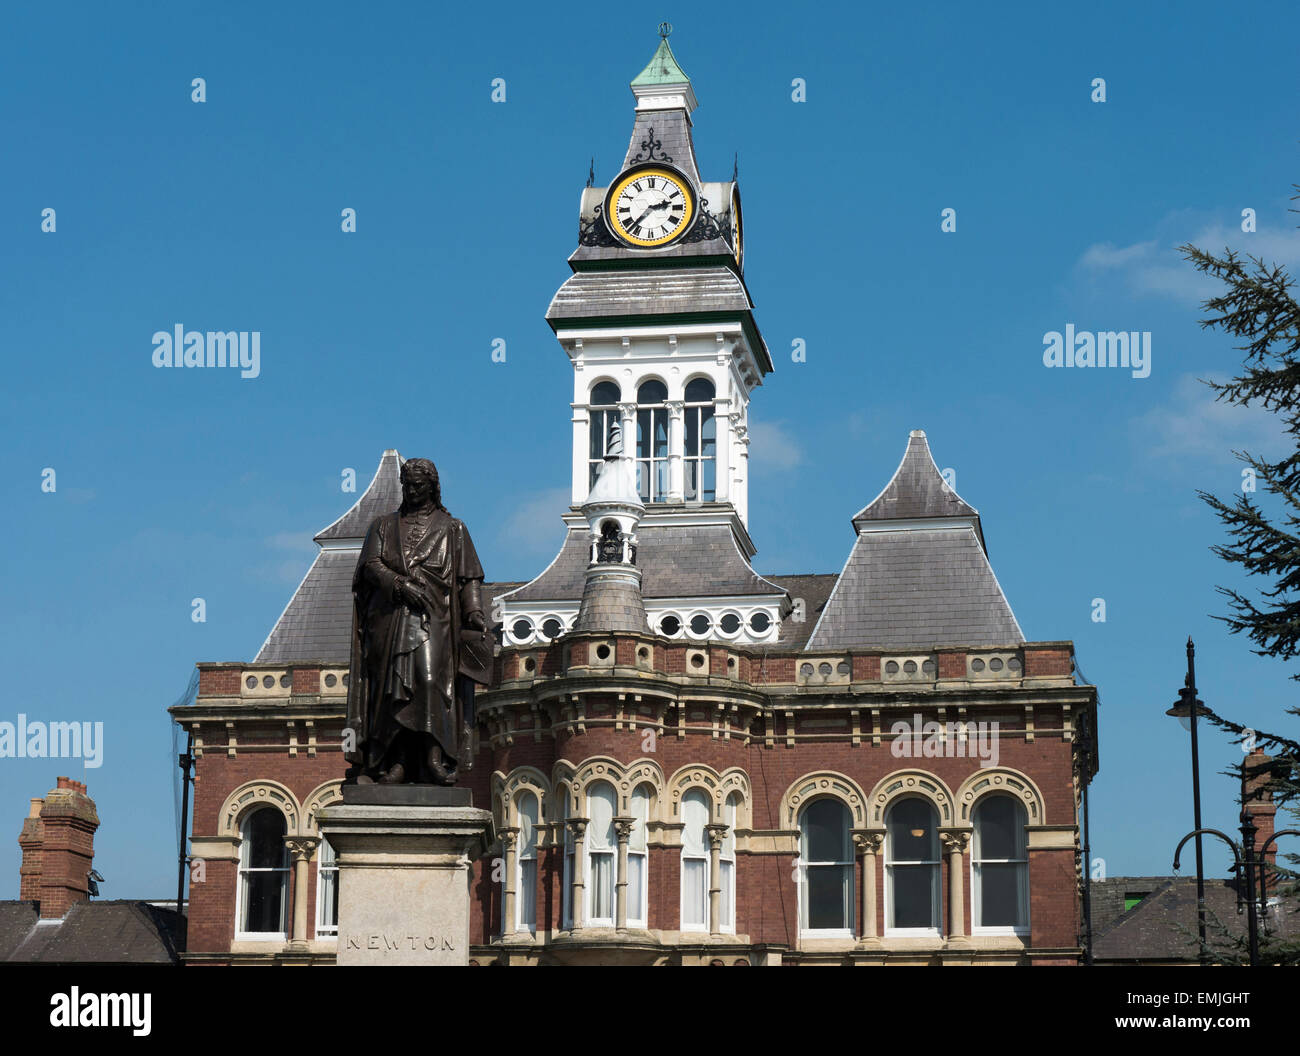 Statue of Sir Isaac Newton and the Guildhall Arts Centre, Grantham, Lincolnshire, England, UK - Stock Image